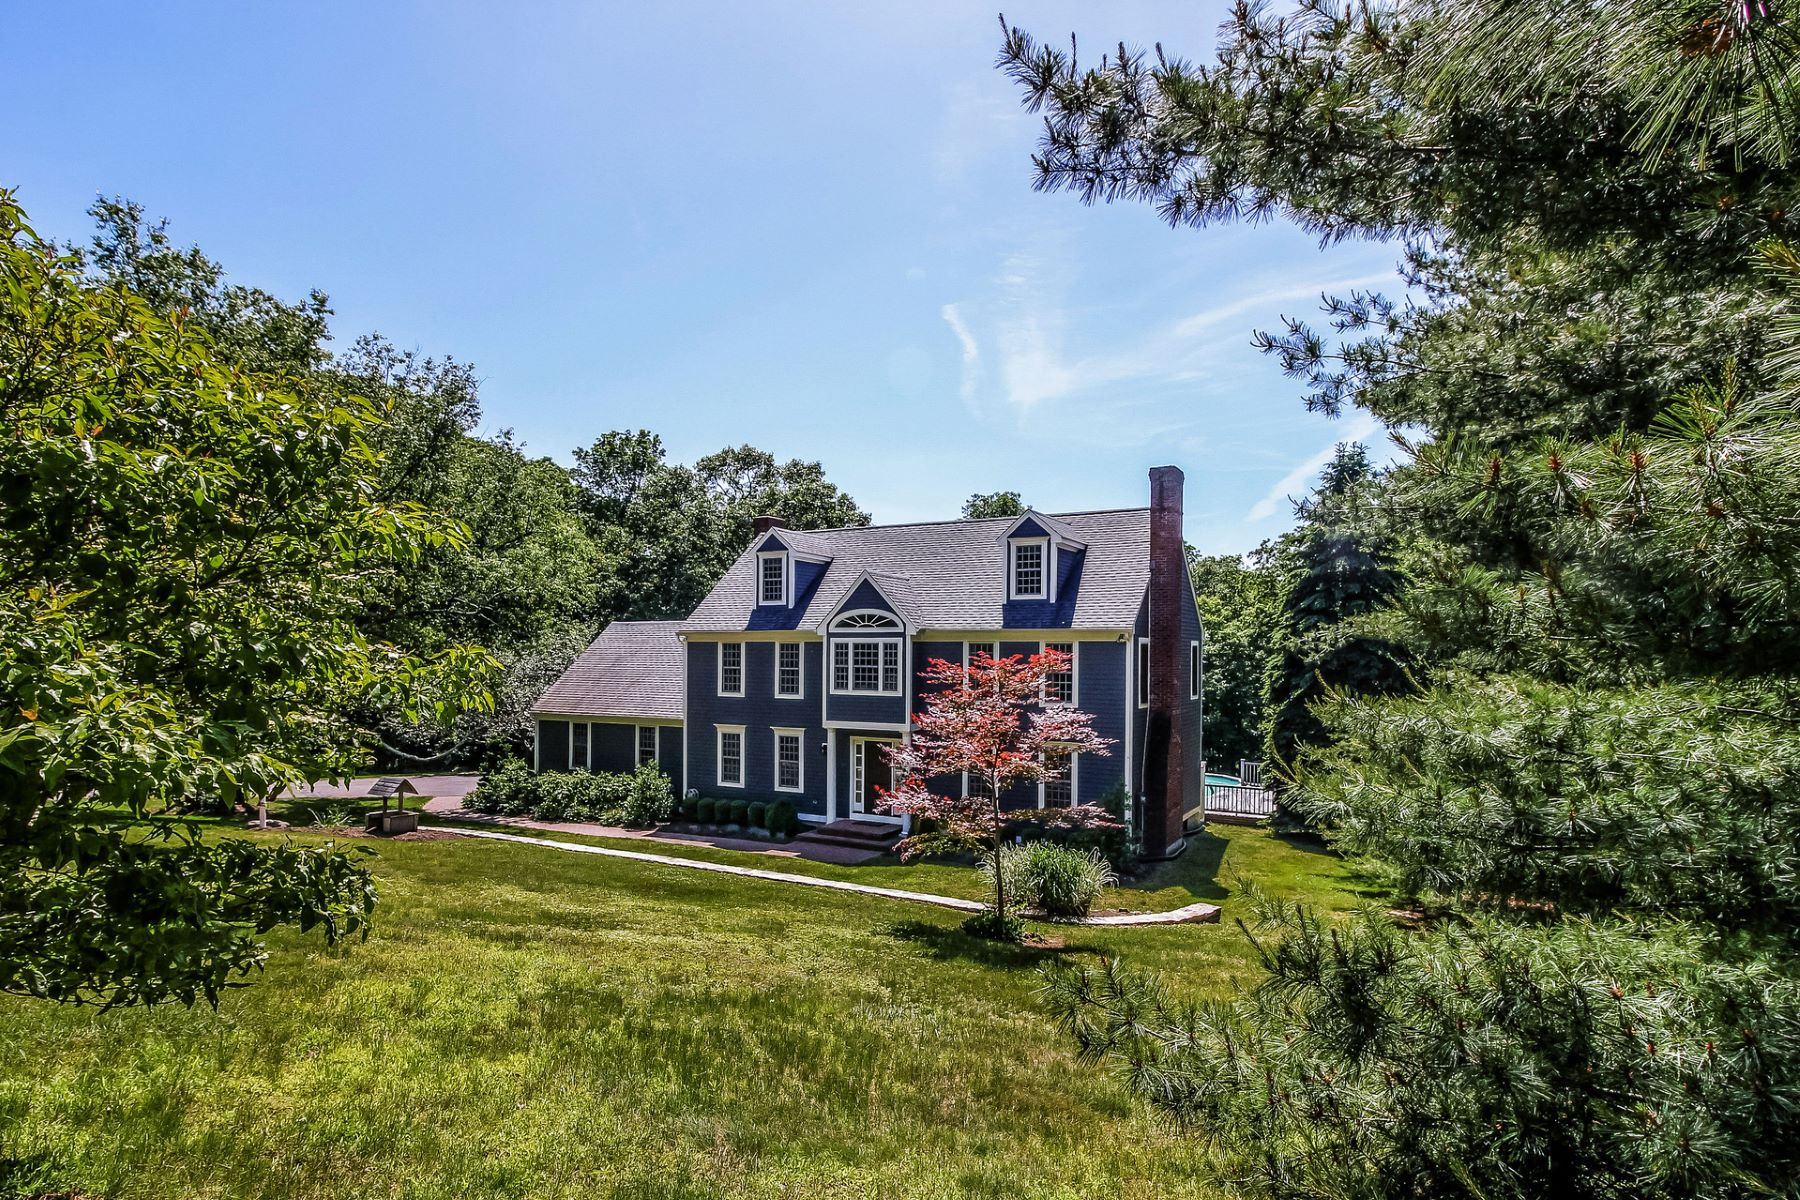 single family homes voor Verkoop op Impressive Colonial Set Back on Over 3 Acres 67 Ortner Drive, Westbrook, Connecticut 06498 Verenigde Staten